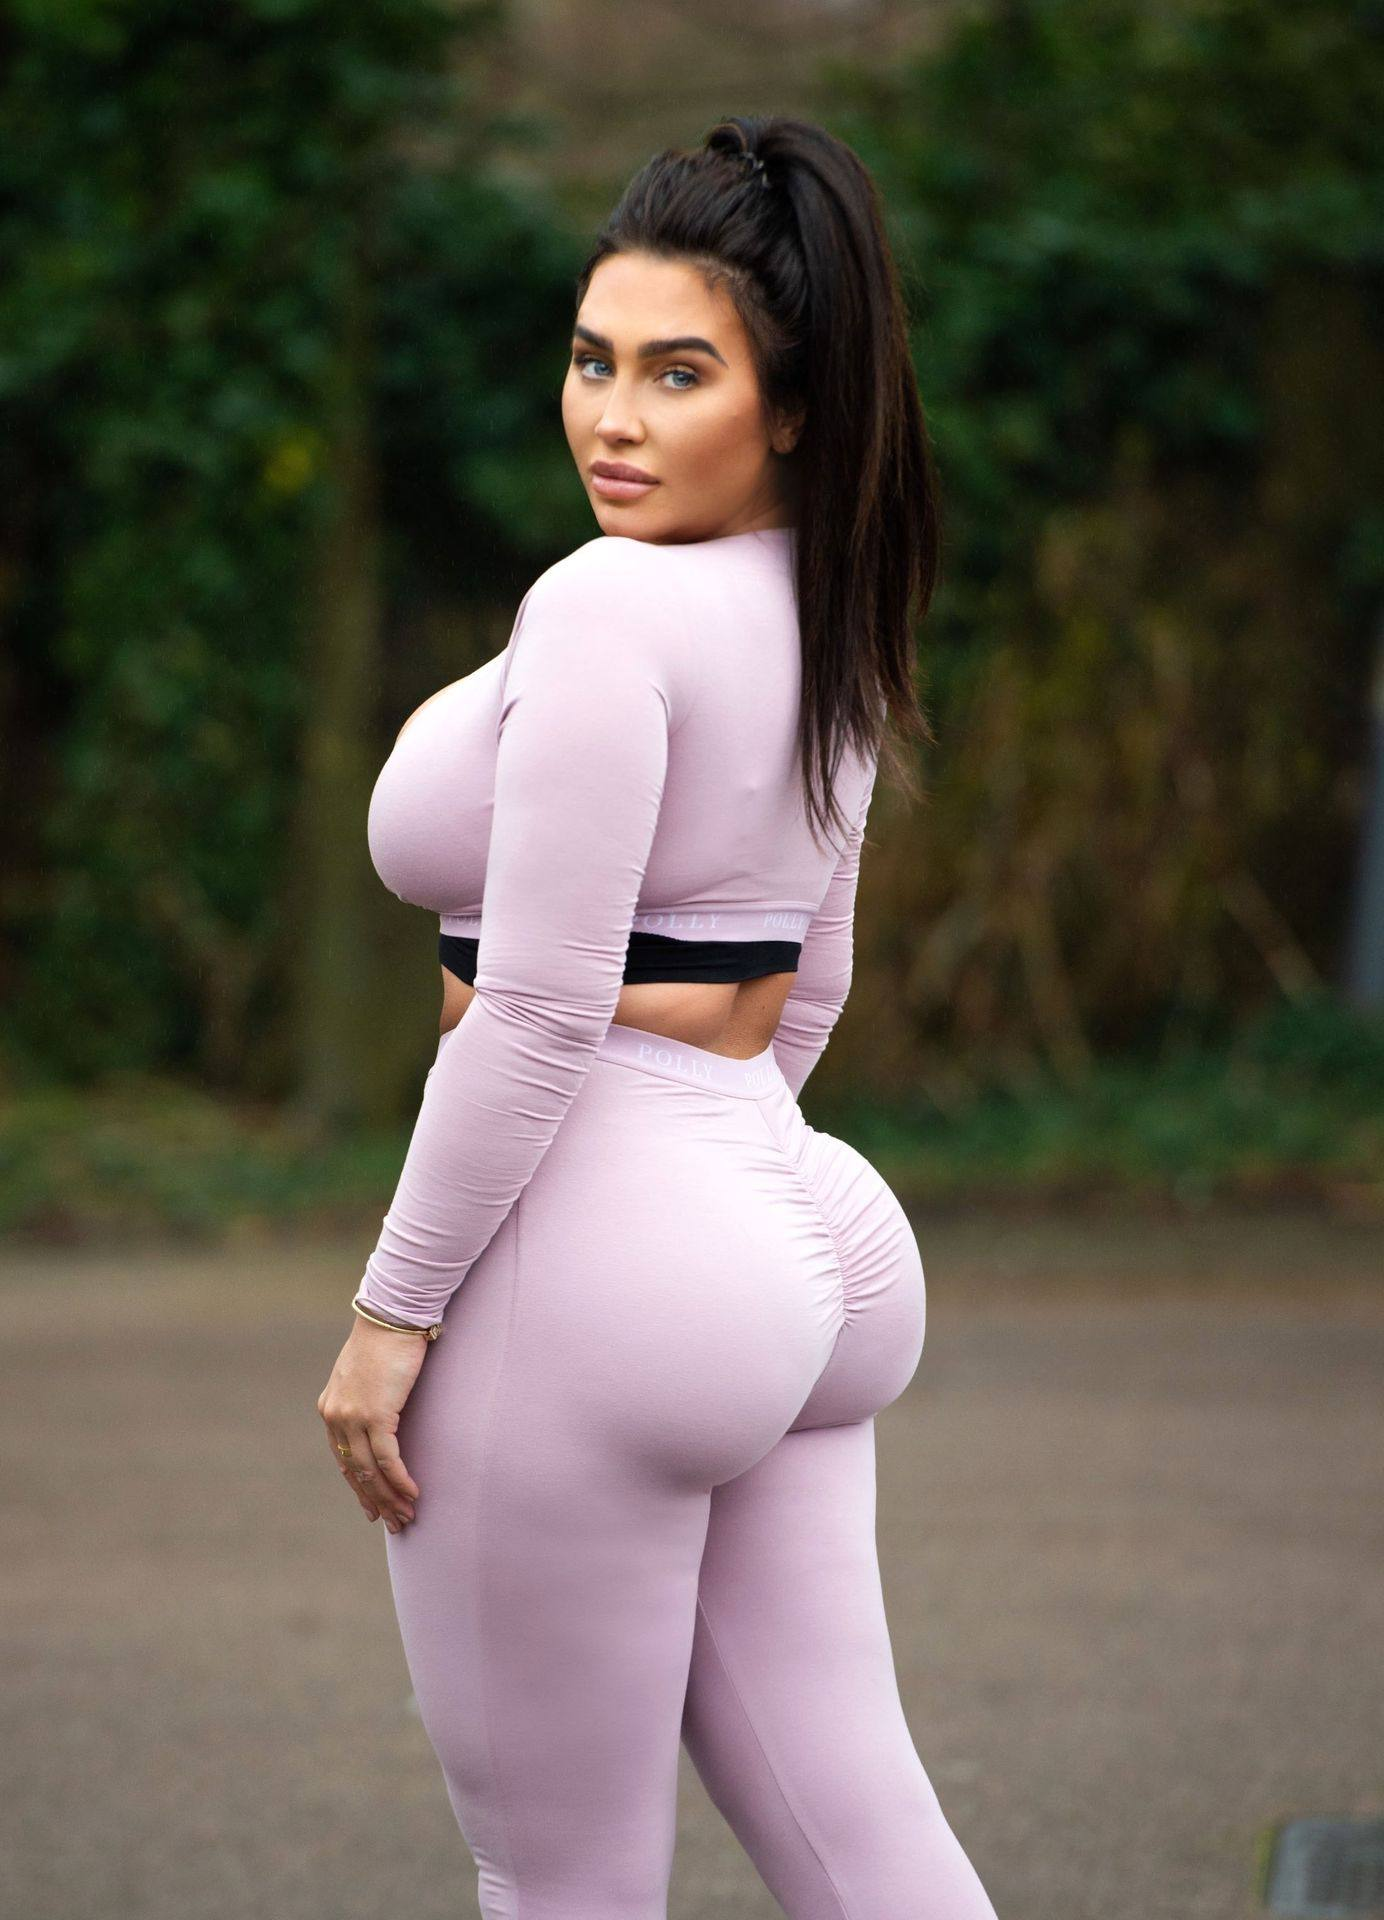 Lauren Goodger – Sexy Thick Body In Leggings And Revealing Top Out In Essex 0006